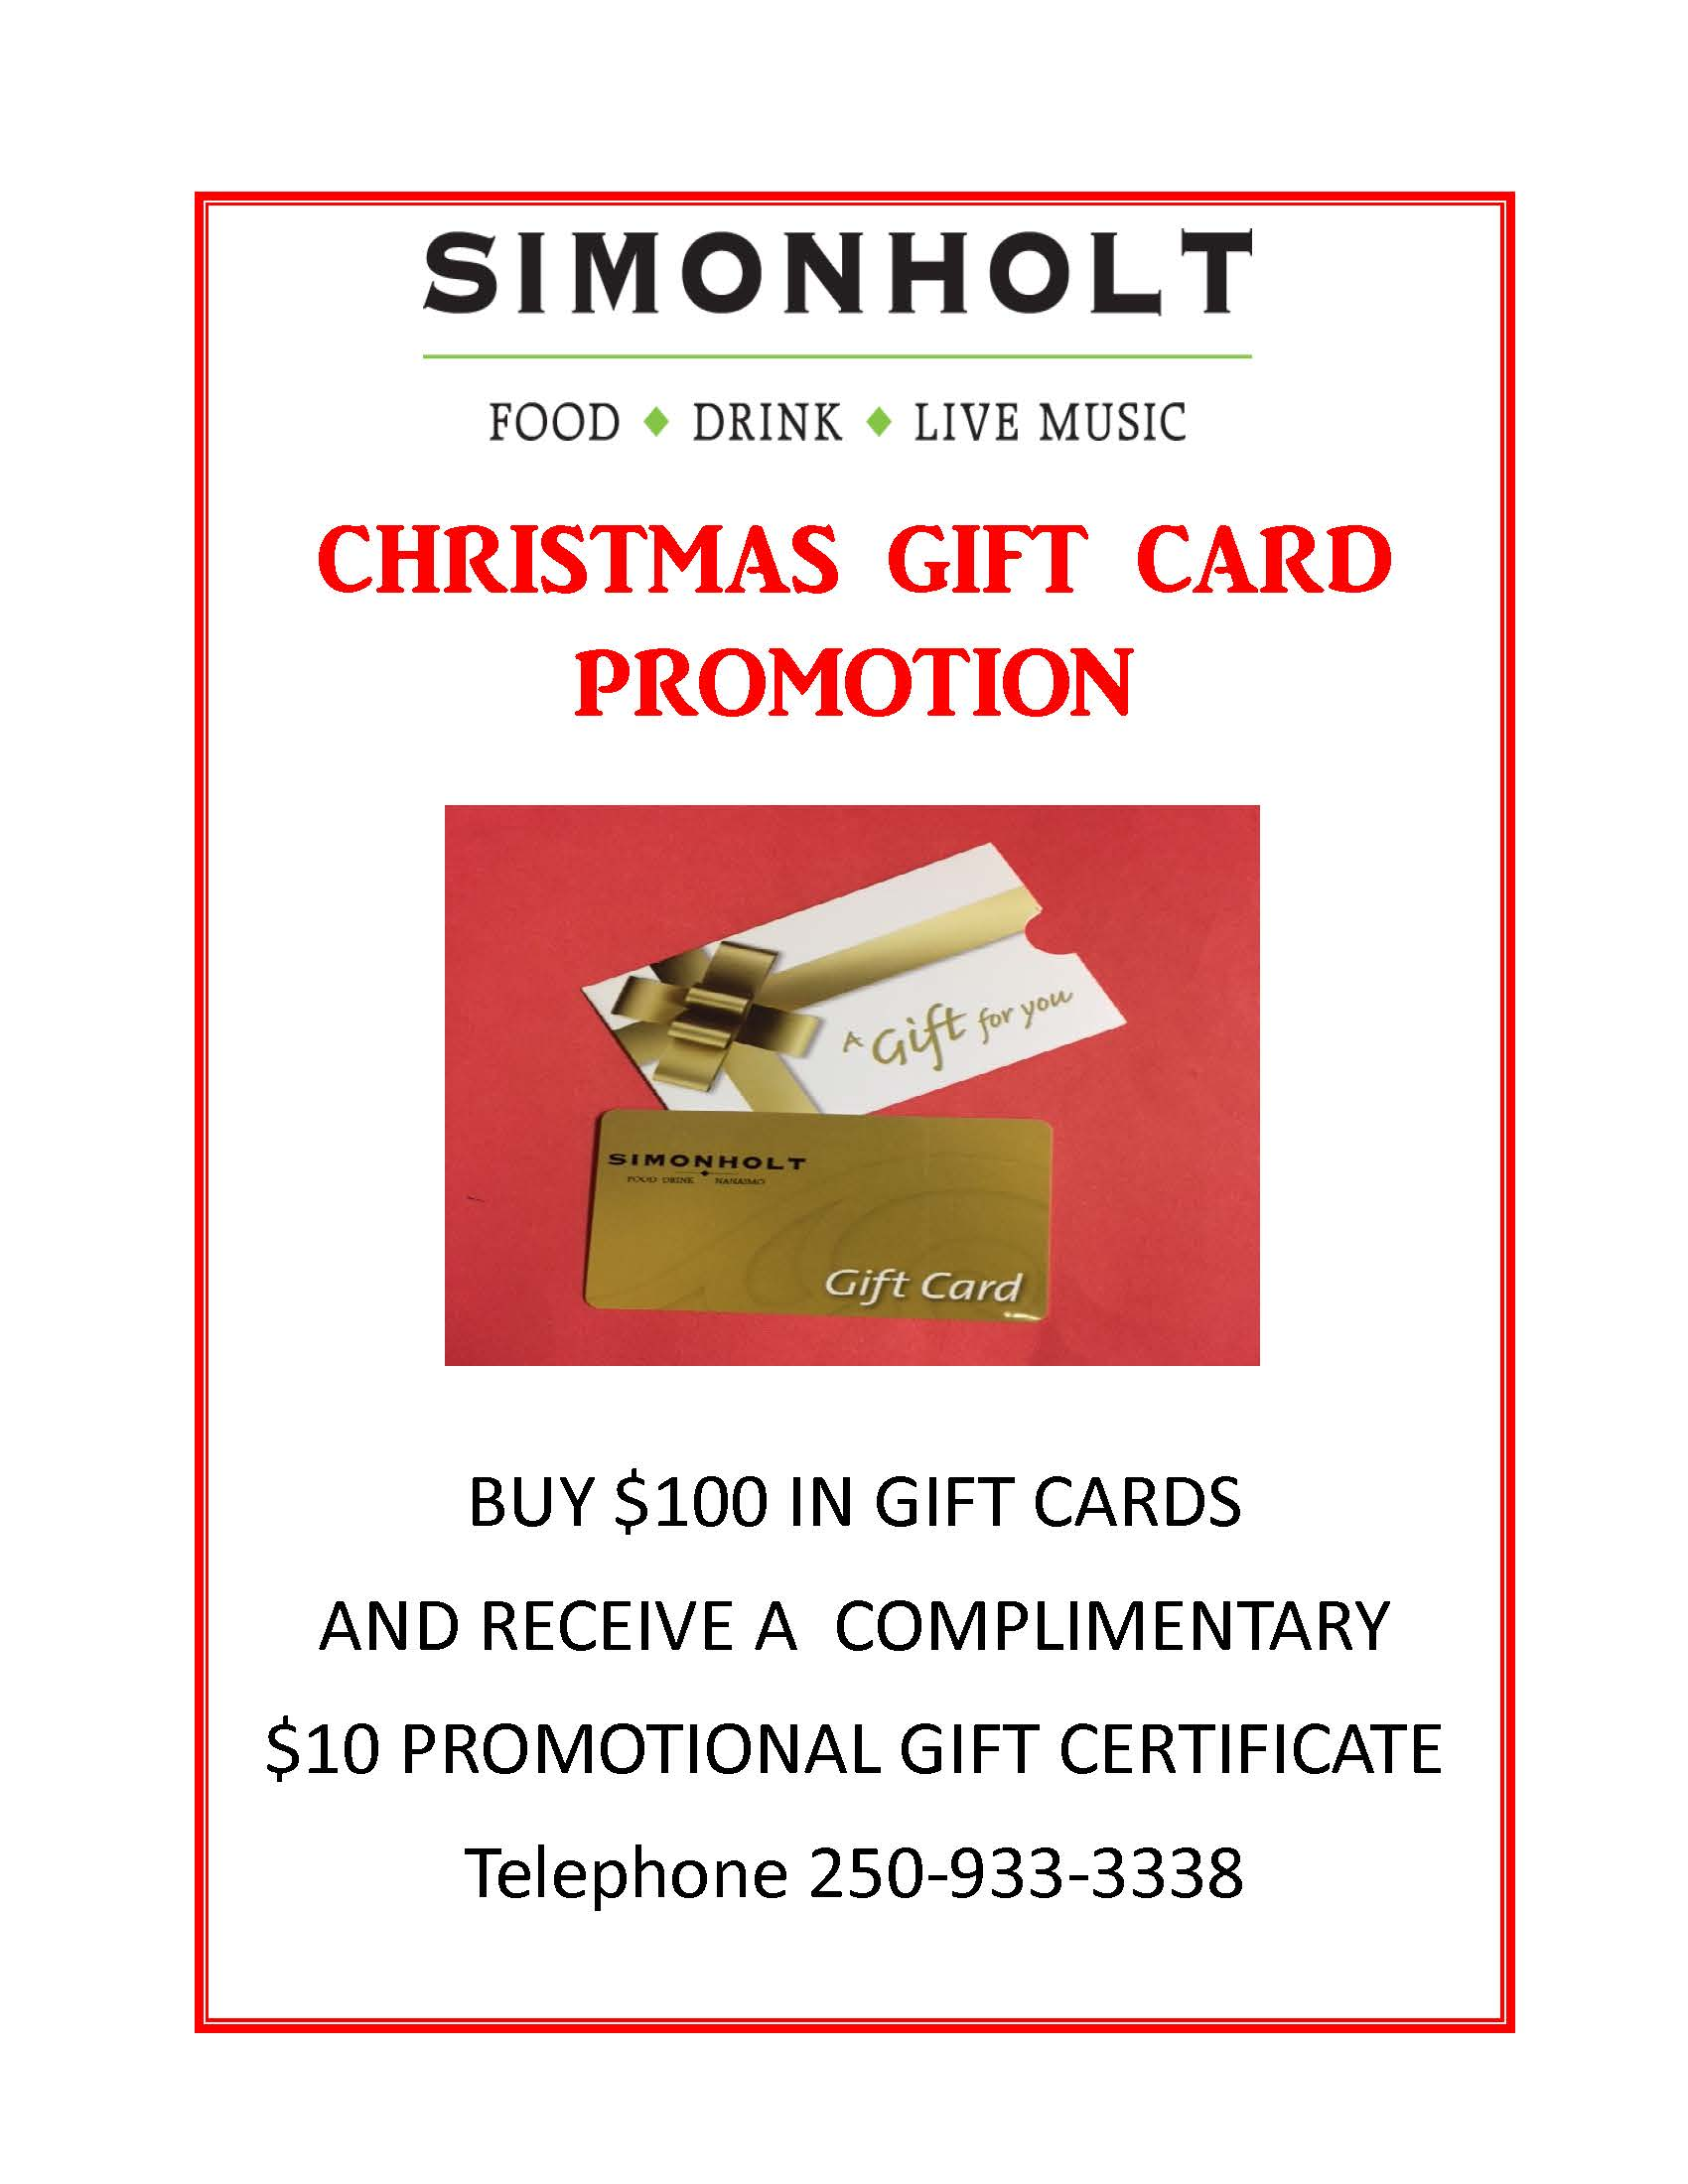 christmas gift card promotion simonholt restaurant food drink live music - Christmas Gift Card Deals